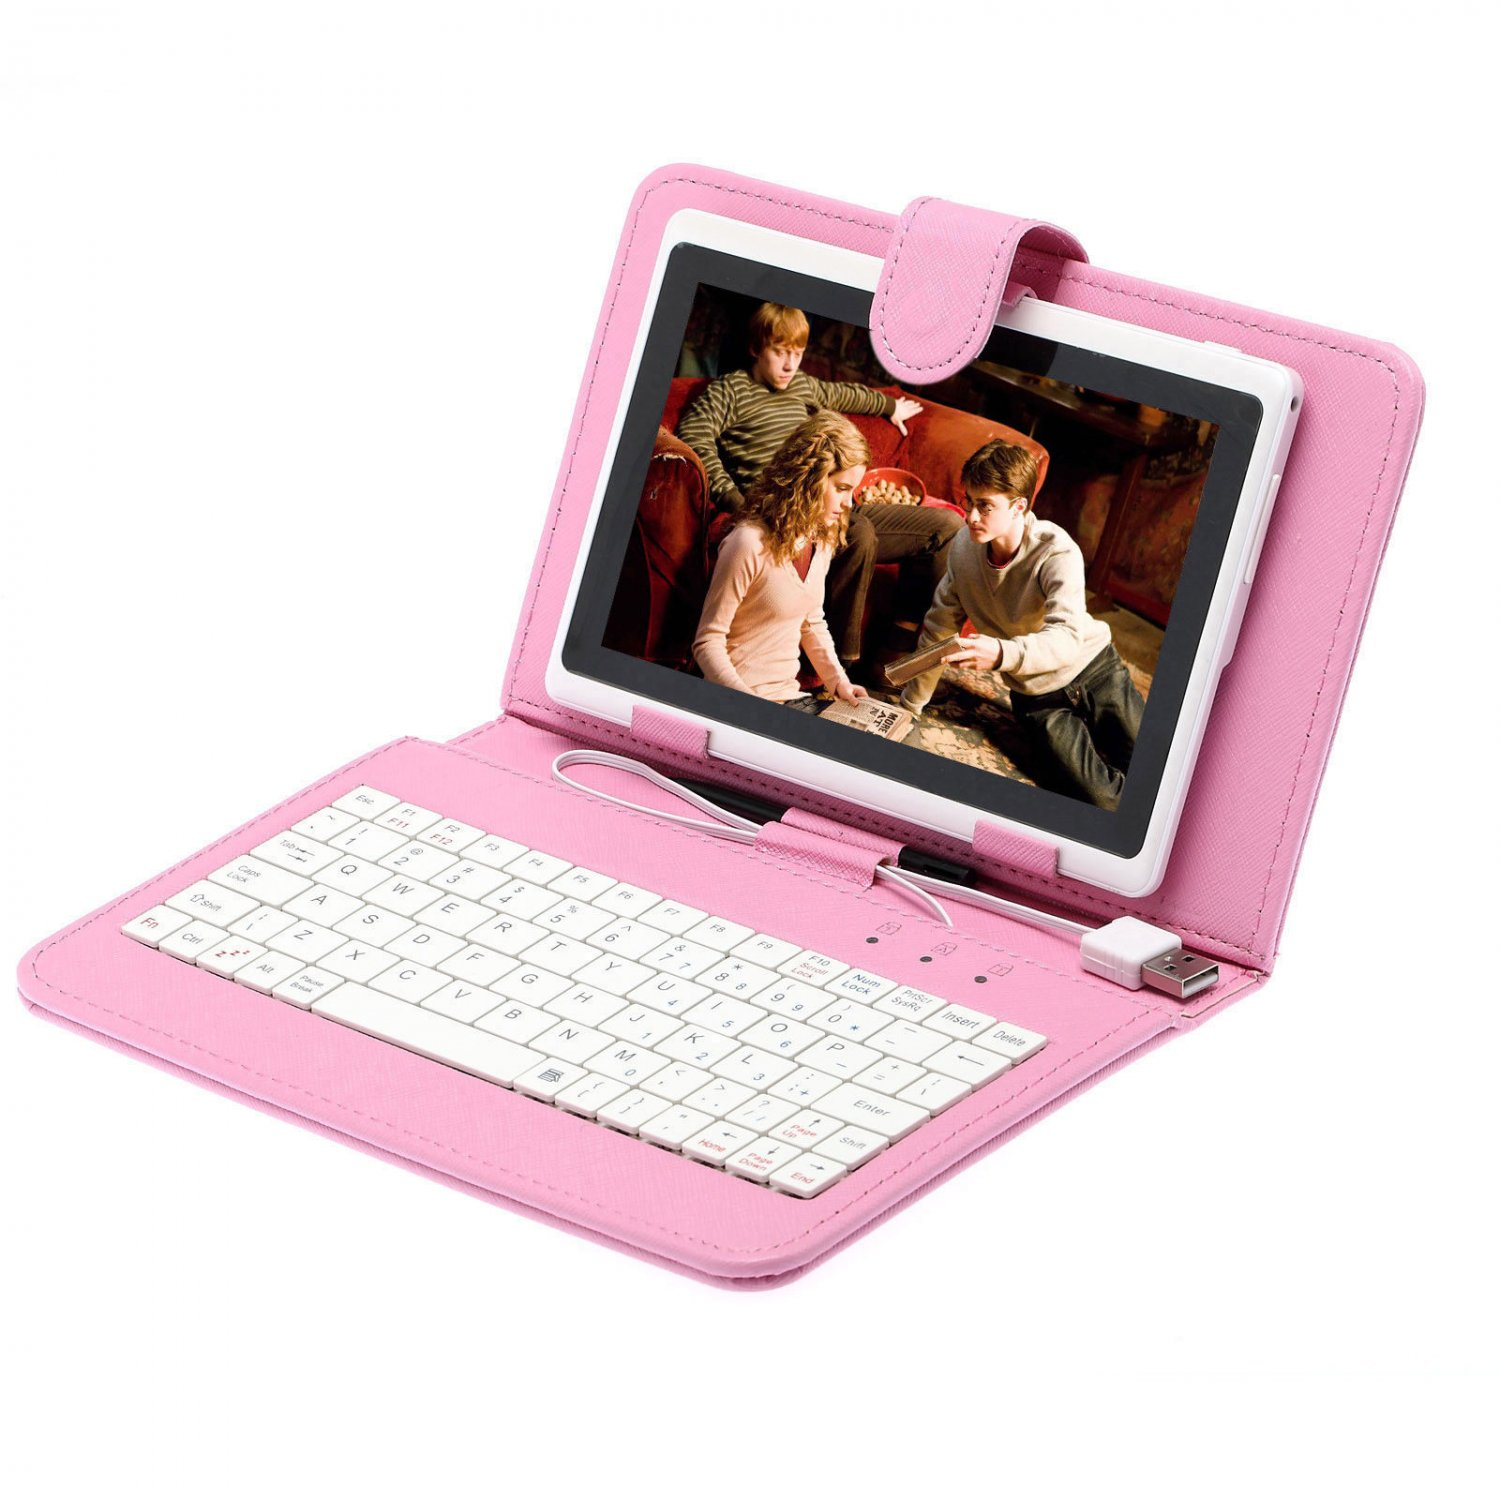 "iRulu 7"" Android 4.0 Tablet PC Cortex A8 1.2GHz Dual Cam Bundle Pink Keyboard"